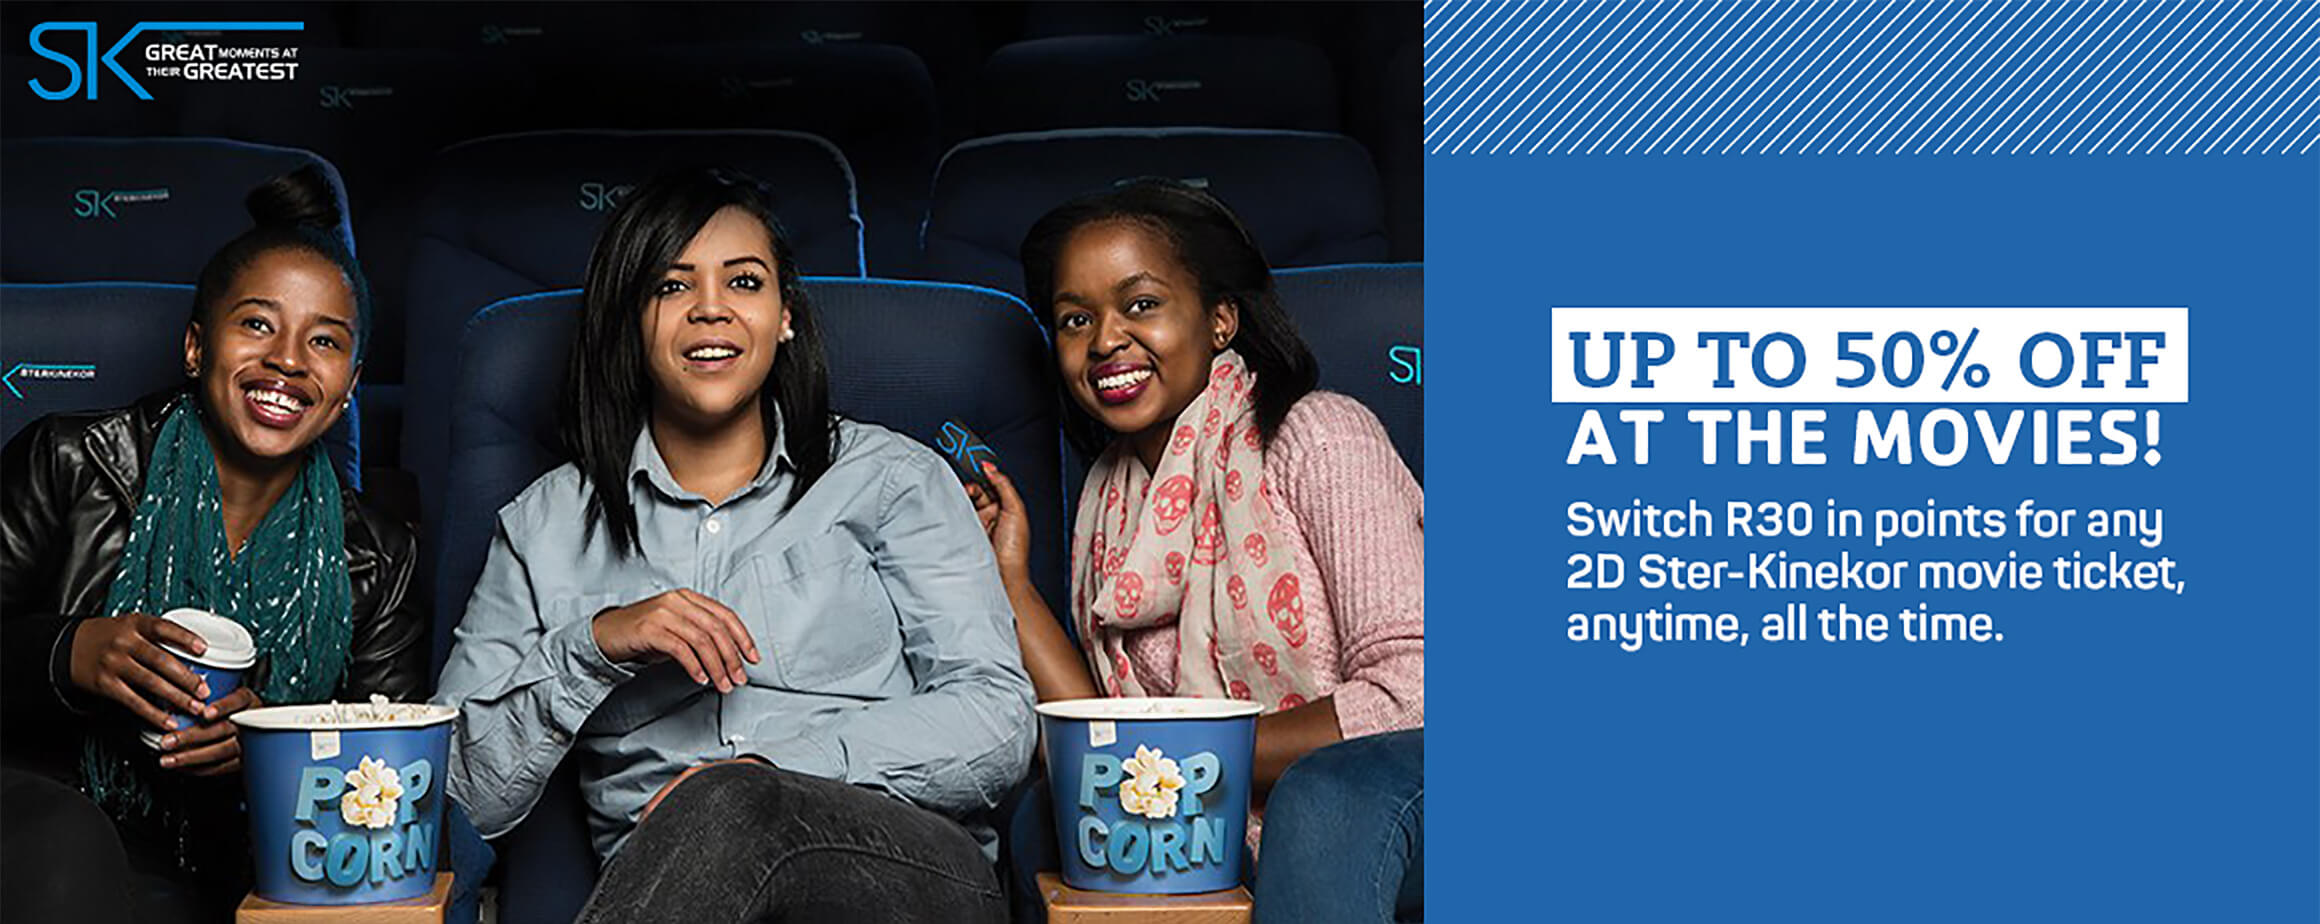 Sterkinekor Movie Tickets | Pick n Pay Online Shopping